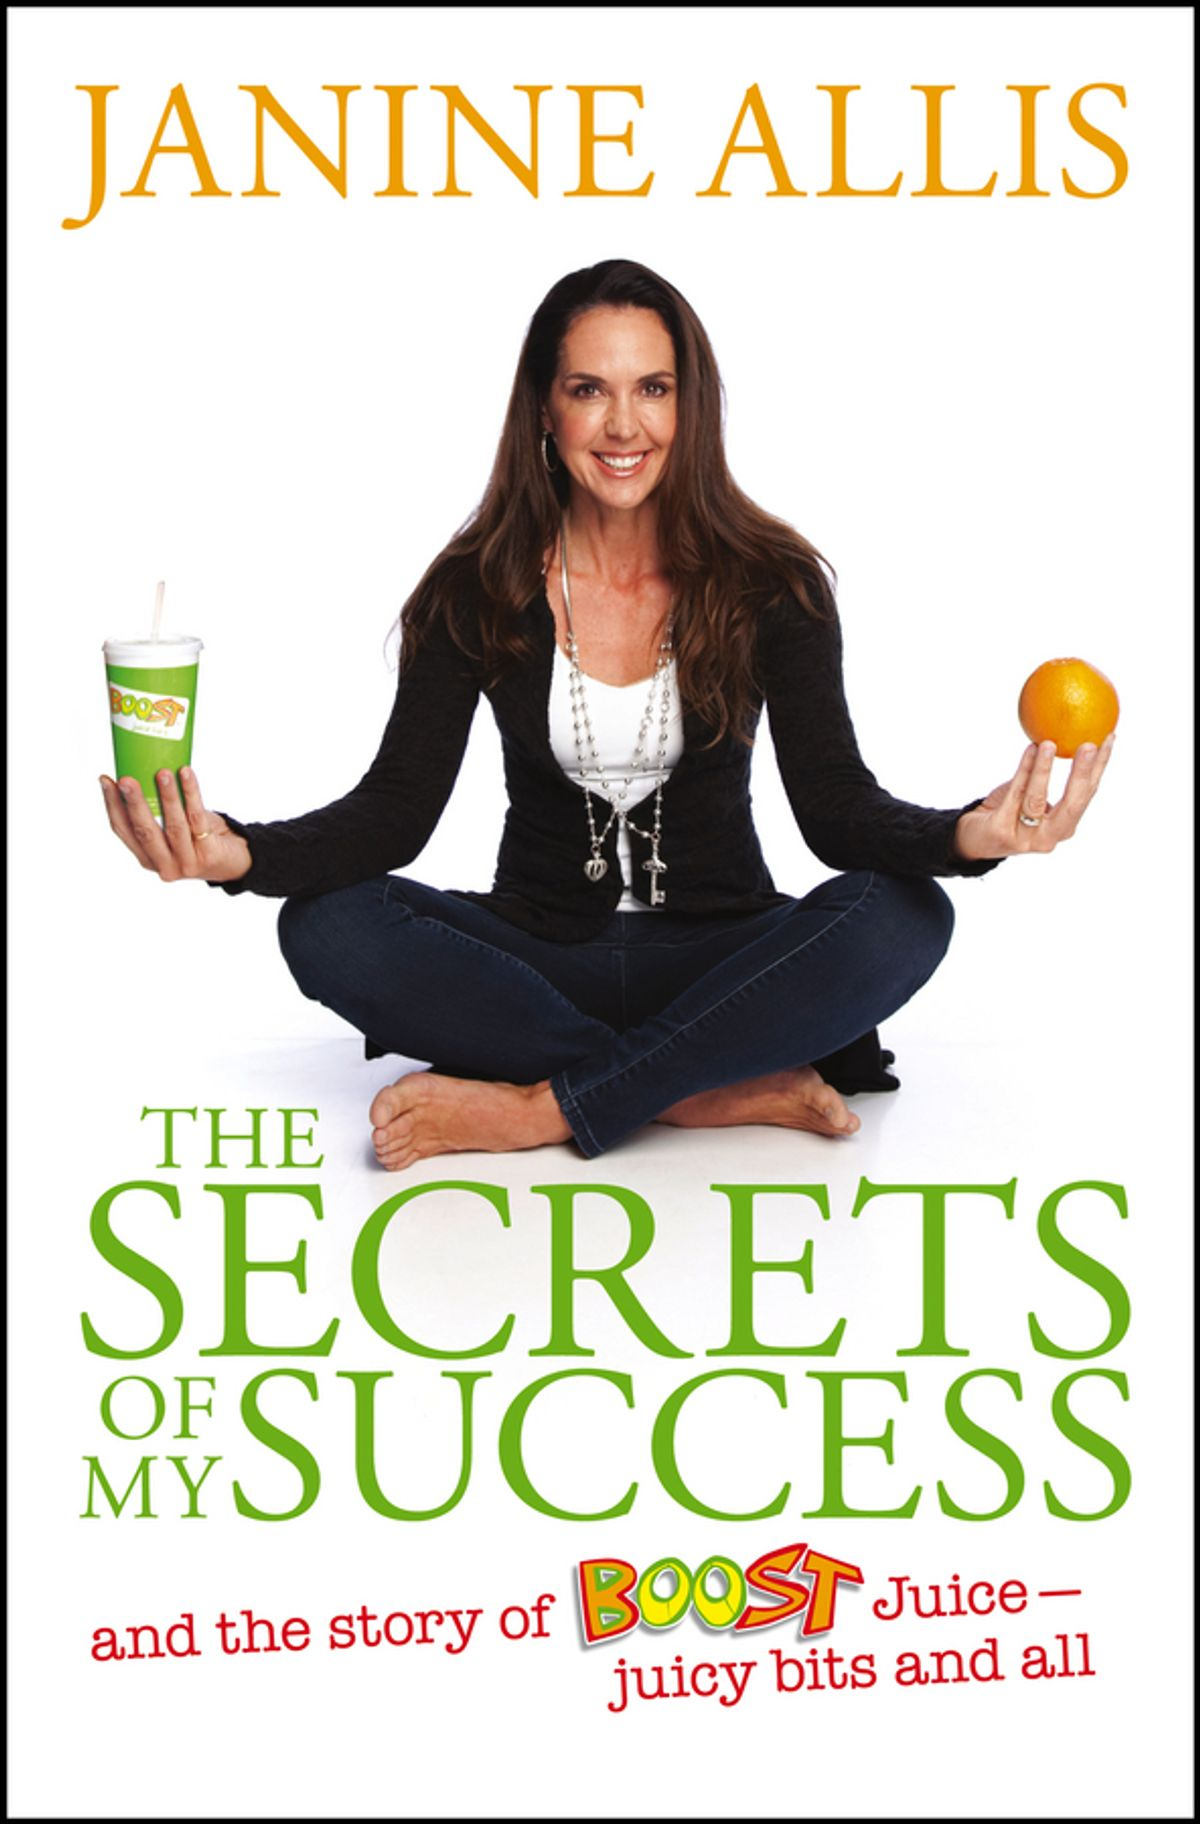 The Secrets of My Success: The story of Boost Juice, juicy bits and all by Janine Allis, ISBN: 9781118648247